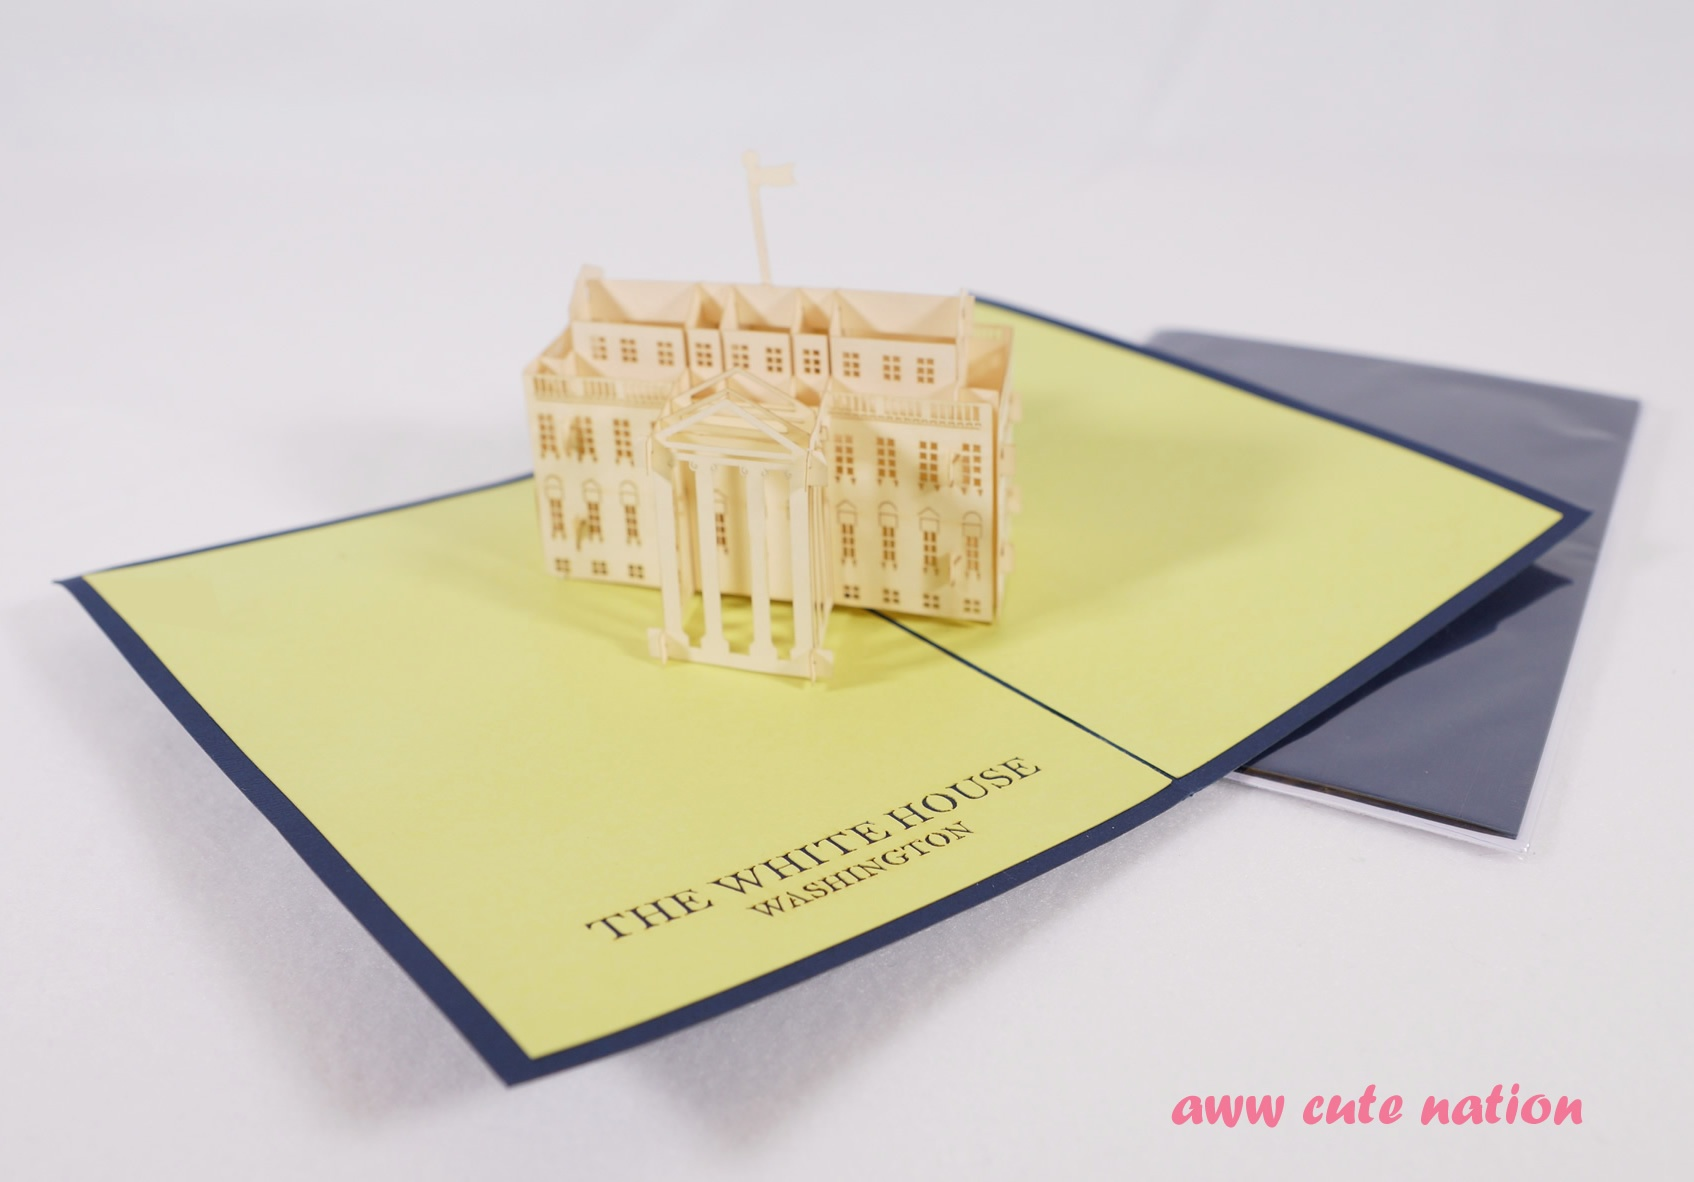 One Special Birthday Cake Aww Cute Nation – Birthday Card from White House